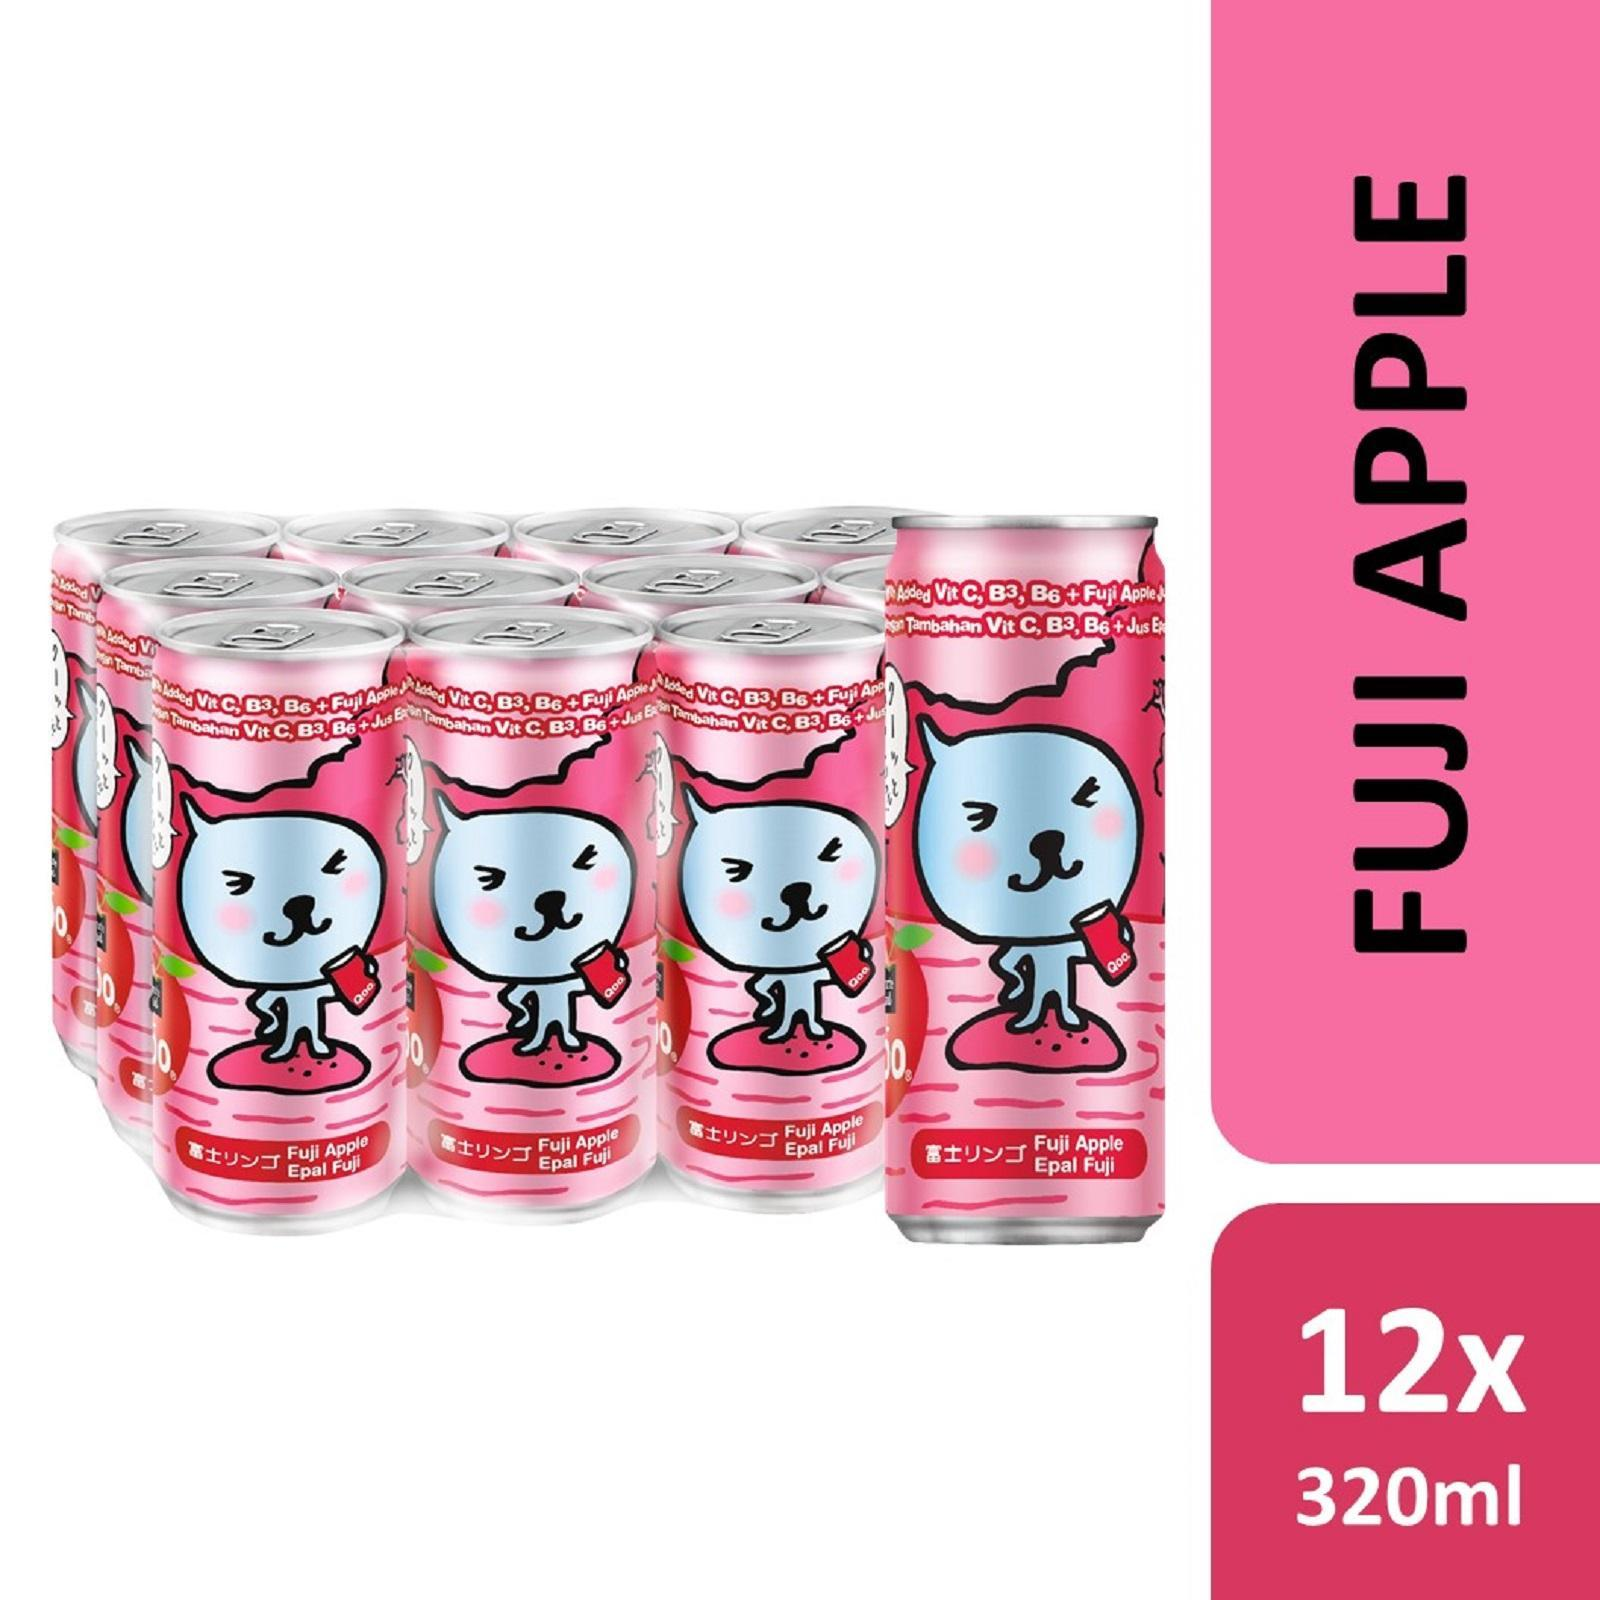 MINUTE MAID Qoo Fuji Apple 12sX315ml